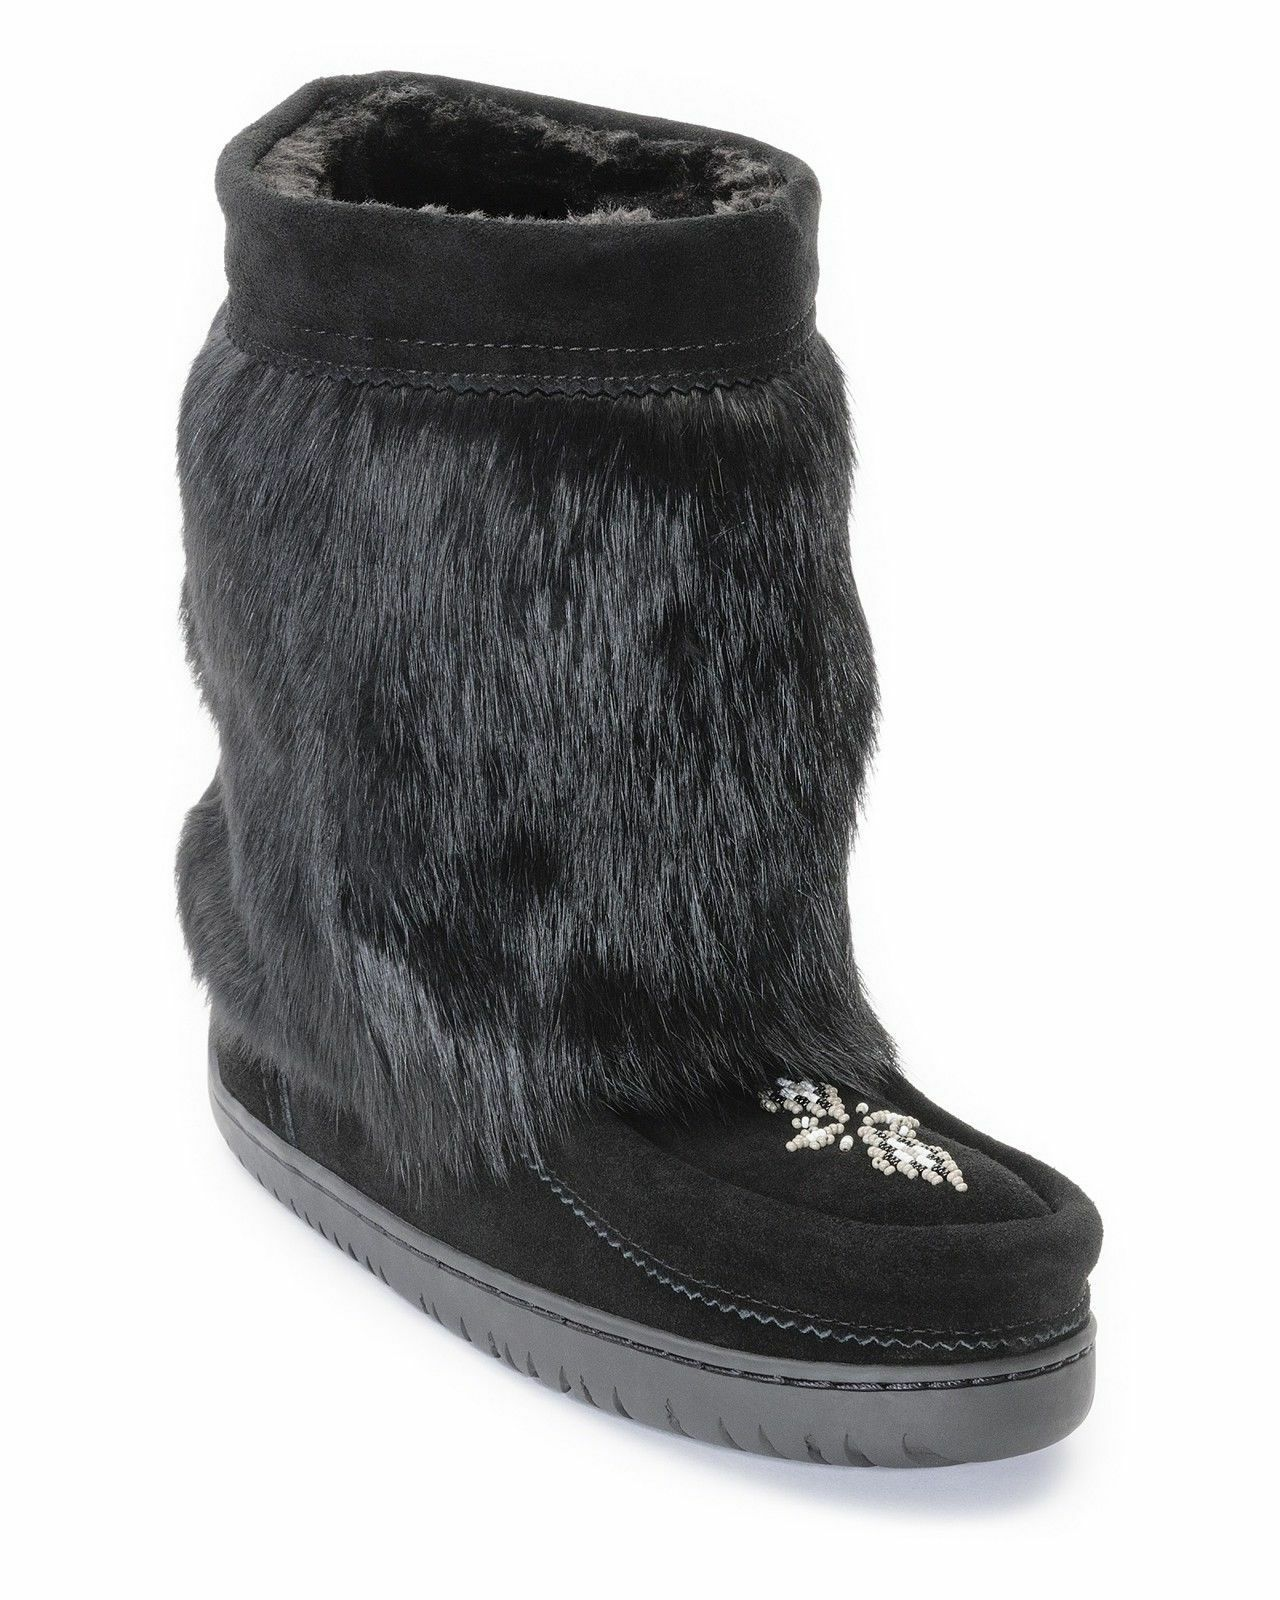 Men/Women Authenitic Manitobah Half Mukluks Vibram Sole Online Shopping the Cheaper than the Shopping price Direct business f40781